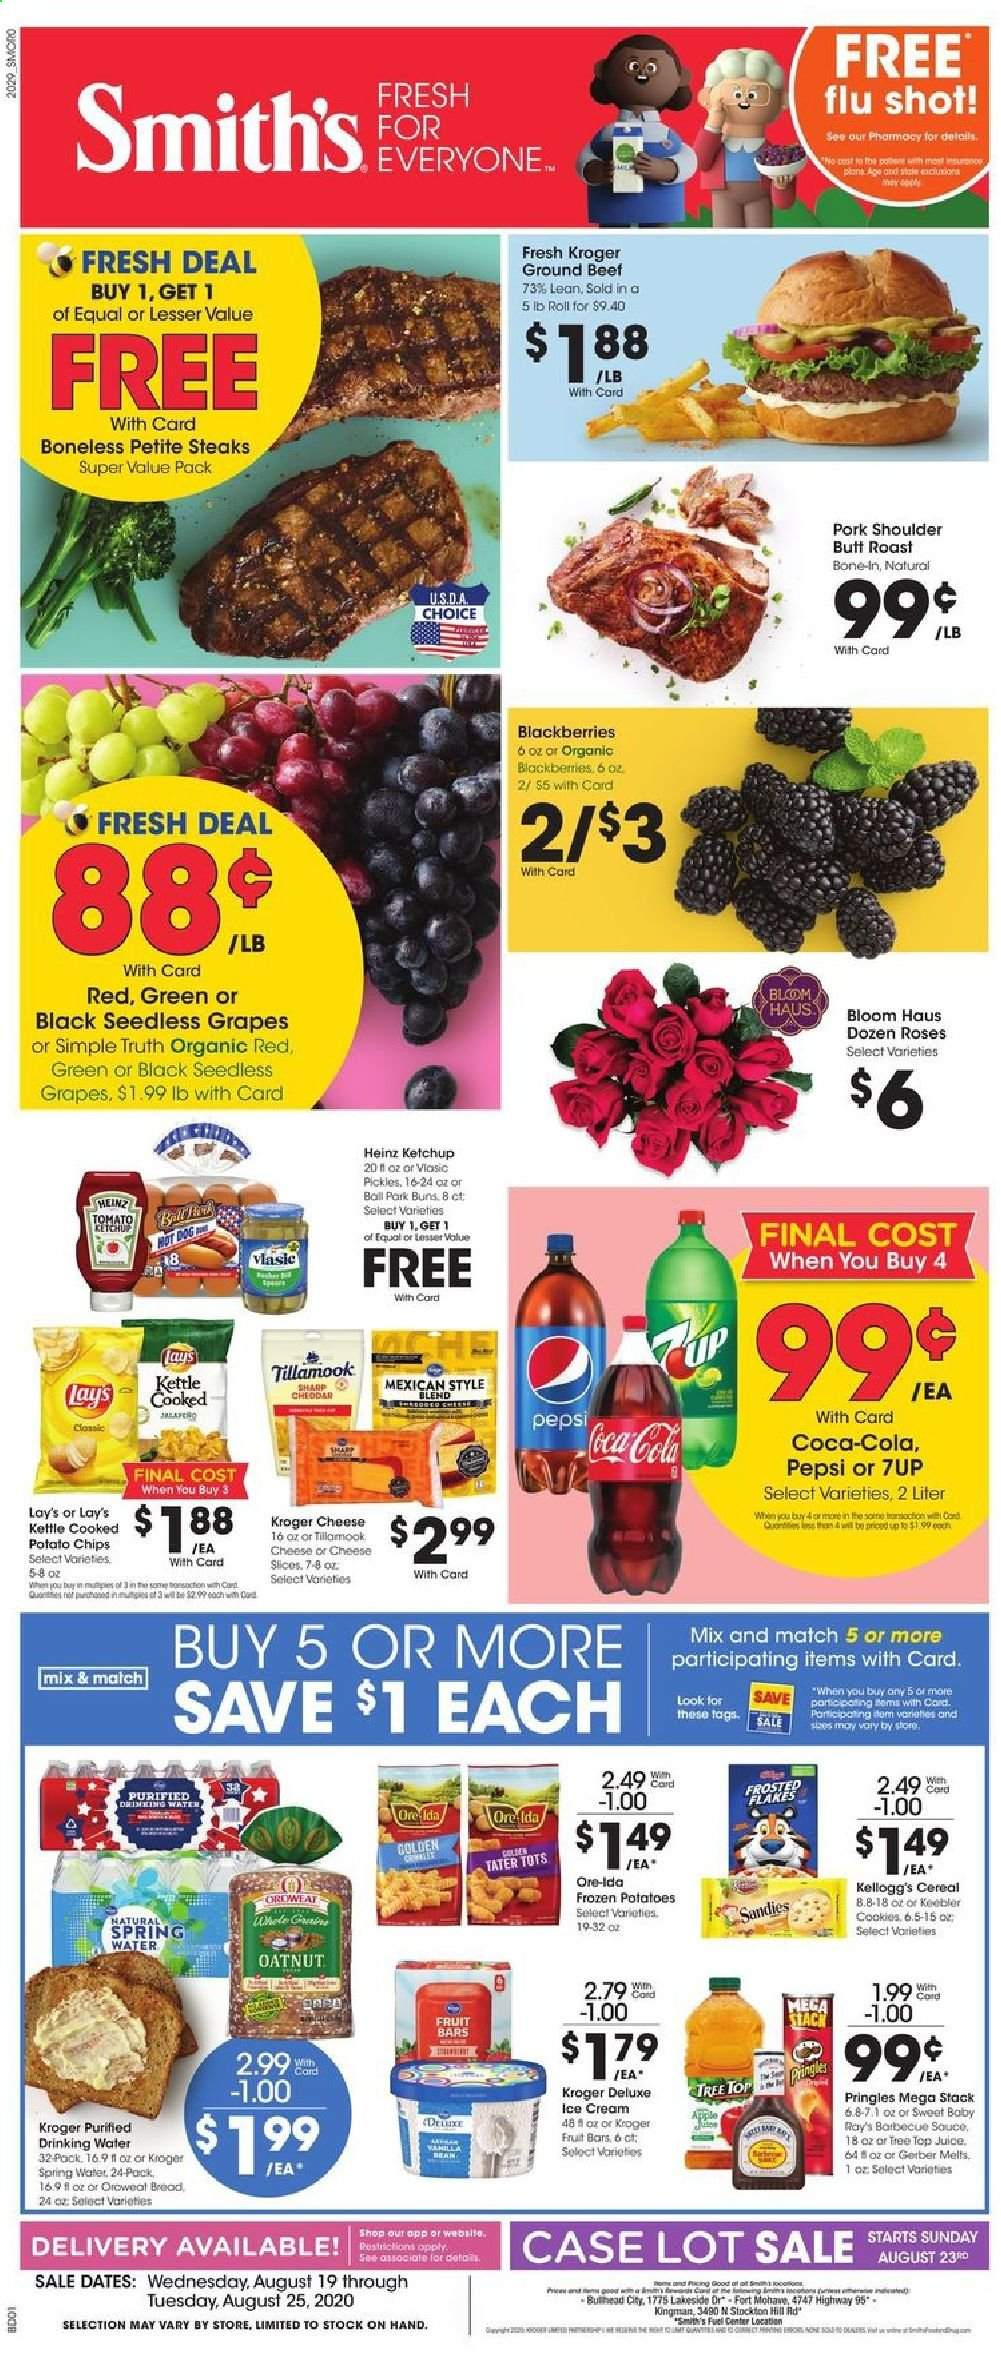 Smith's Flyer - 08.19.2020 - 08.25.2020 - Sales products - beef meat, blackberries, bread, case, cereals, coca-cola, cookies, dates, fuel, gerber, grapes, ground beef, seedless grapes, sharp, spring water, tree, heinz, ice cream, ketchup, pickles, pork meat, pork shoulder, potato chips, potatoes, pringles, cheese slices, pepsi, organic, chips, drinking water, cheese, juice, roses, cereal, lay's, car, ball, fruit, roast, tomato, barbecue, kettle, spring. Page 1.